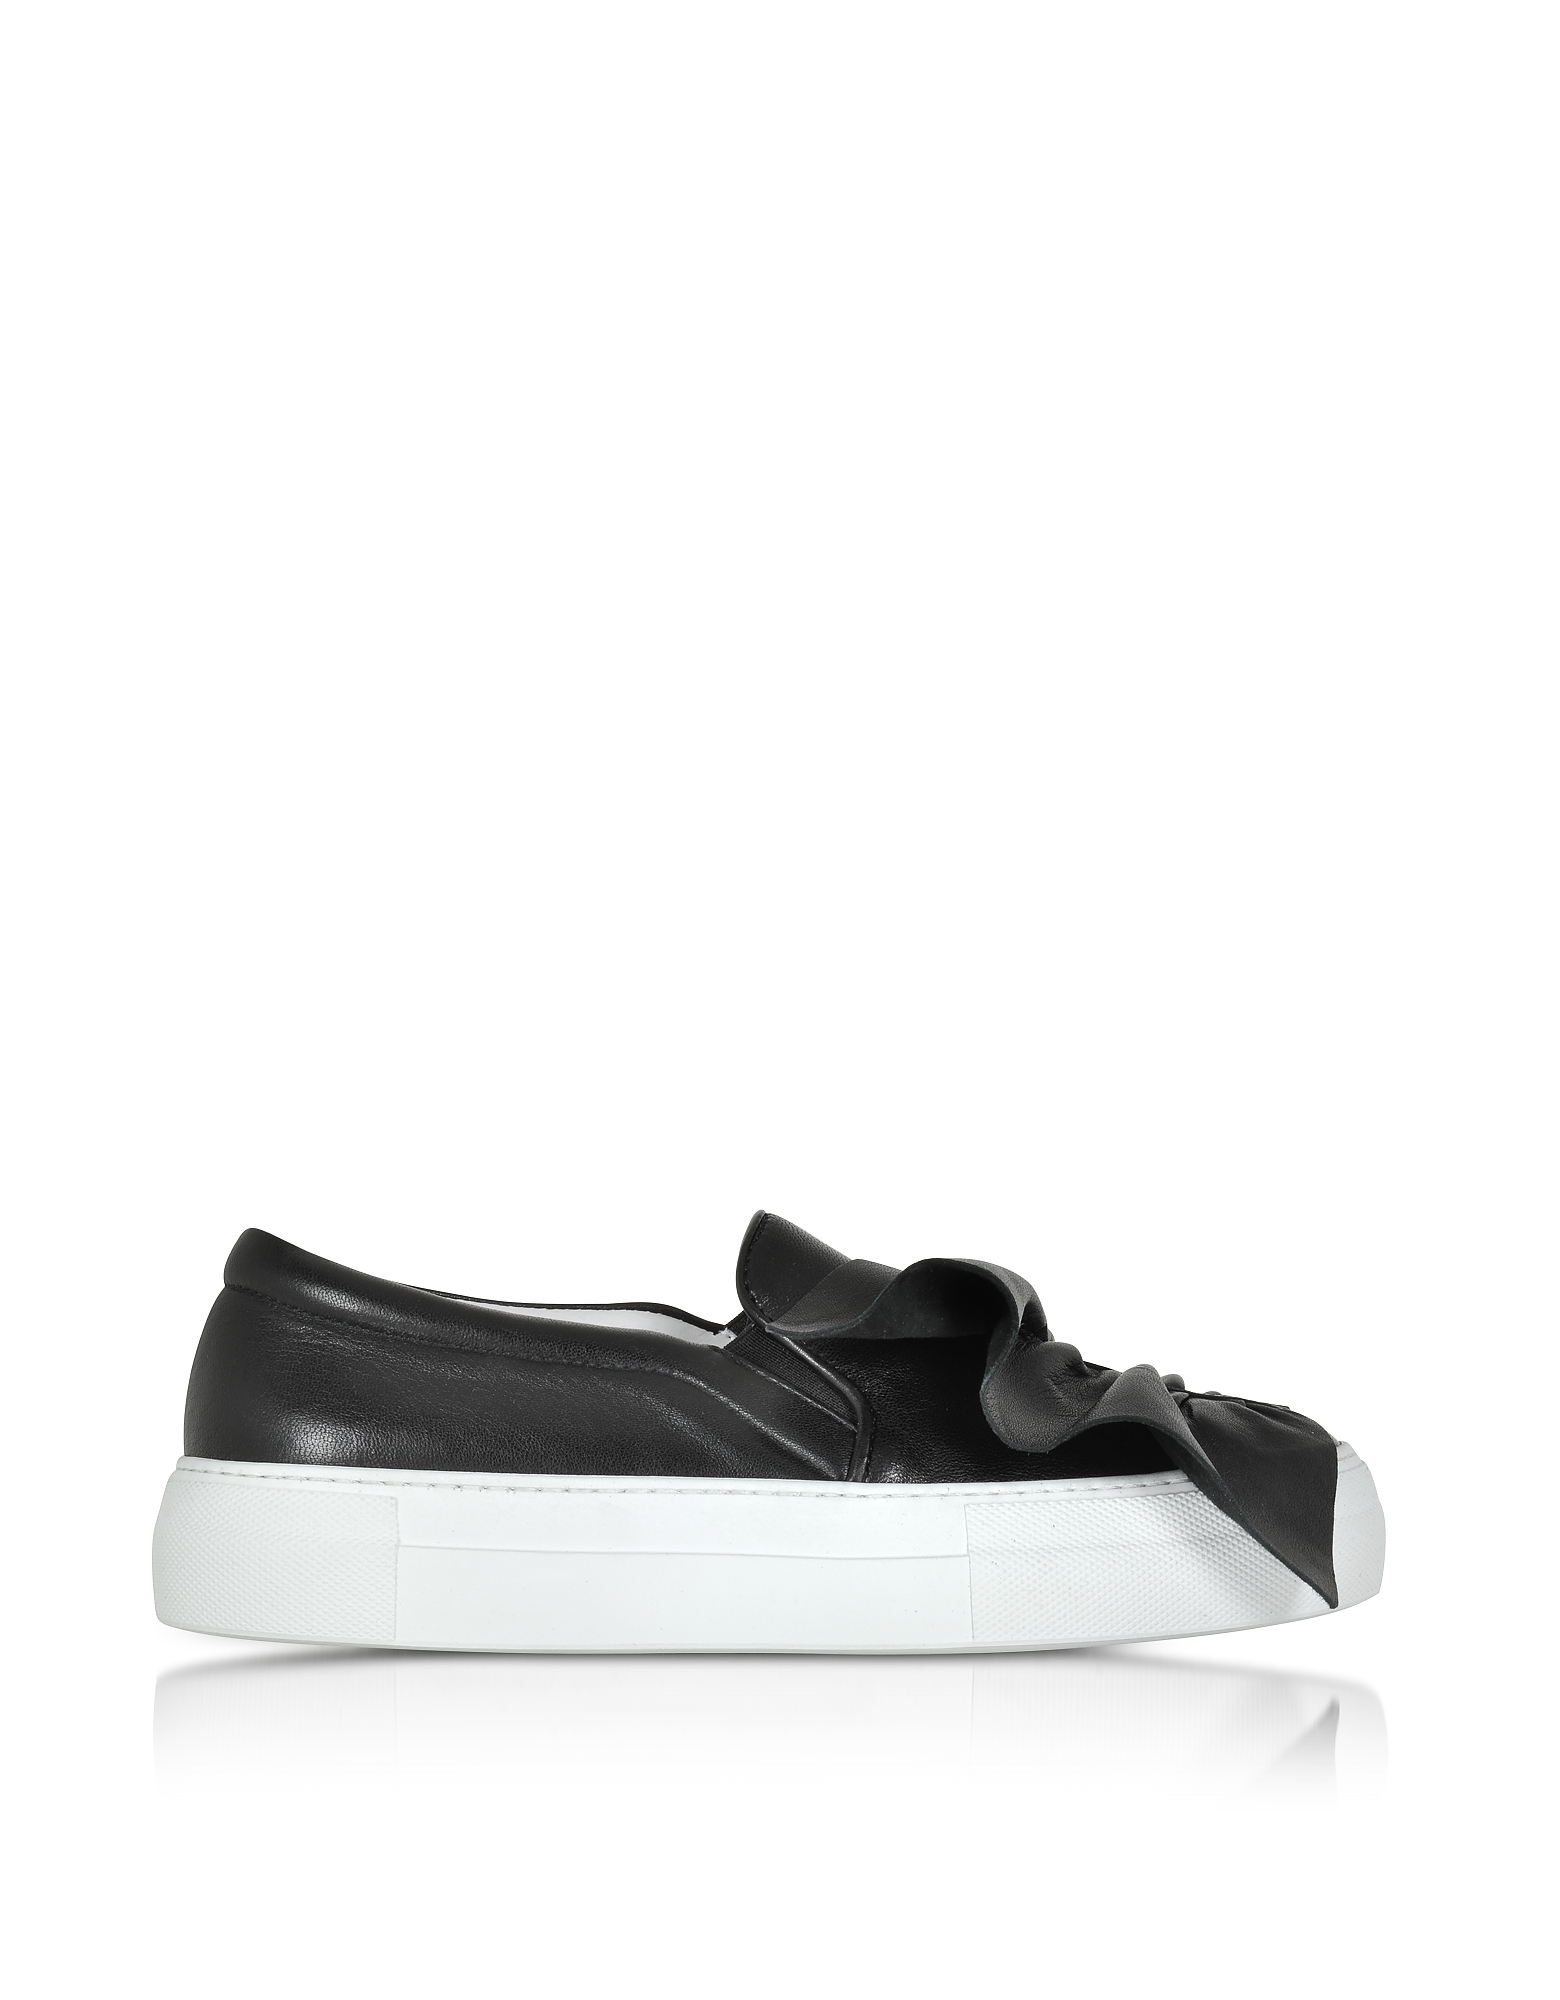 Sneaker da Donna Slip on in Pelle Nera con Rouches